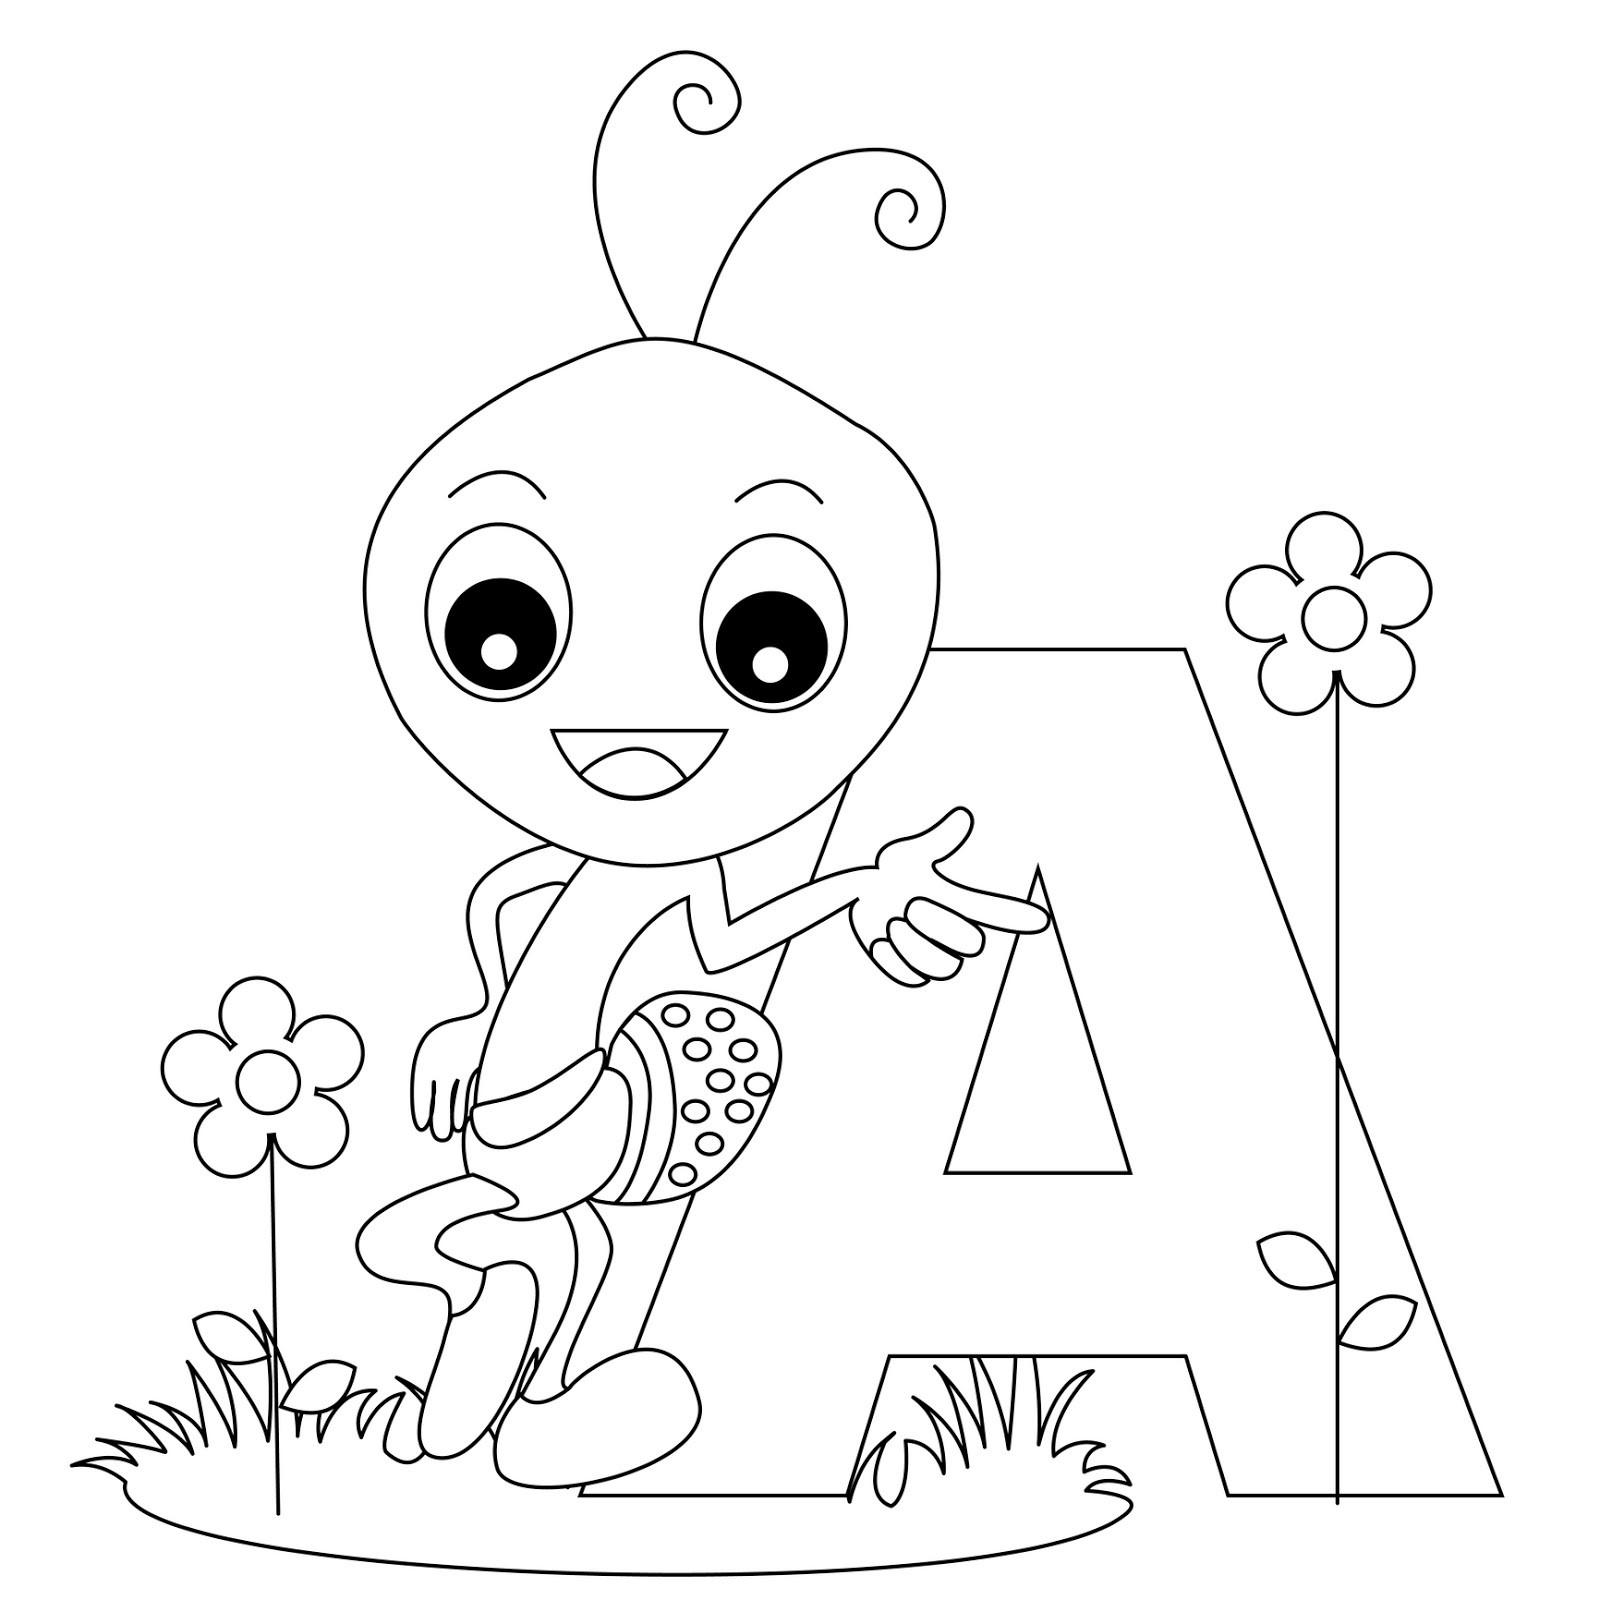 1600x1600 Spongebob And Squidward Coloring Pages For Kids New Coloring